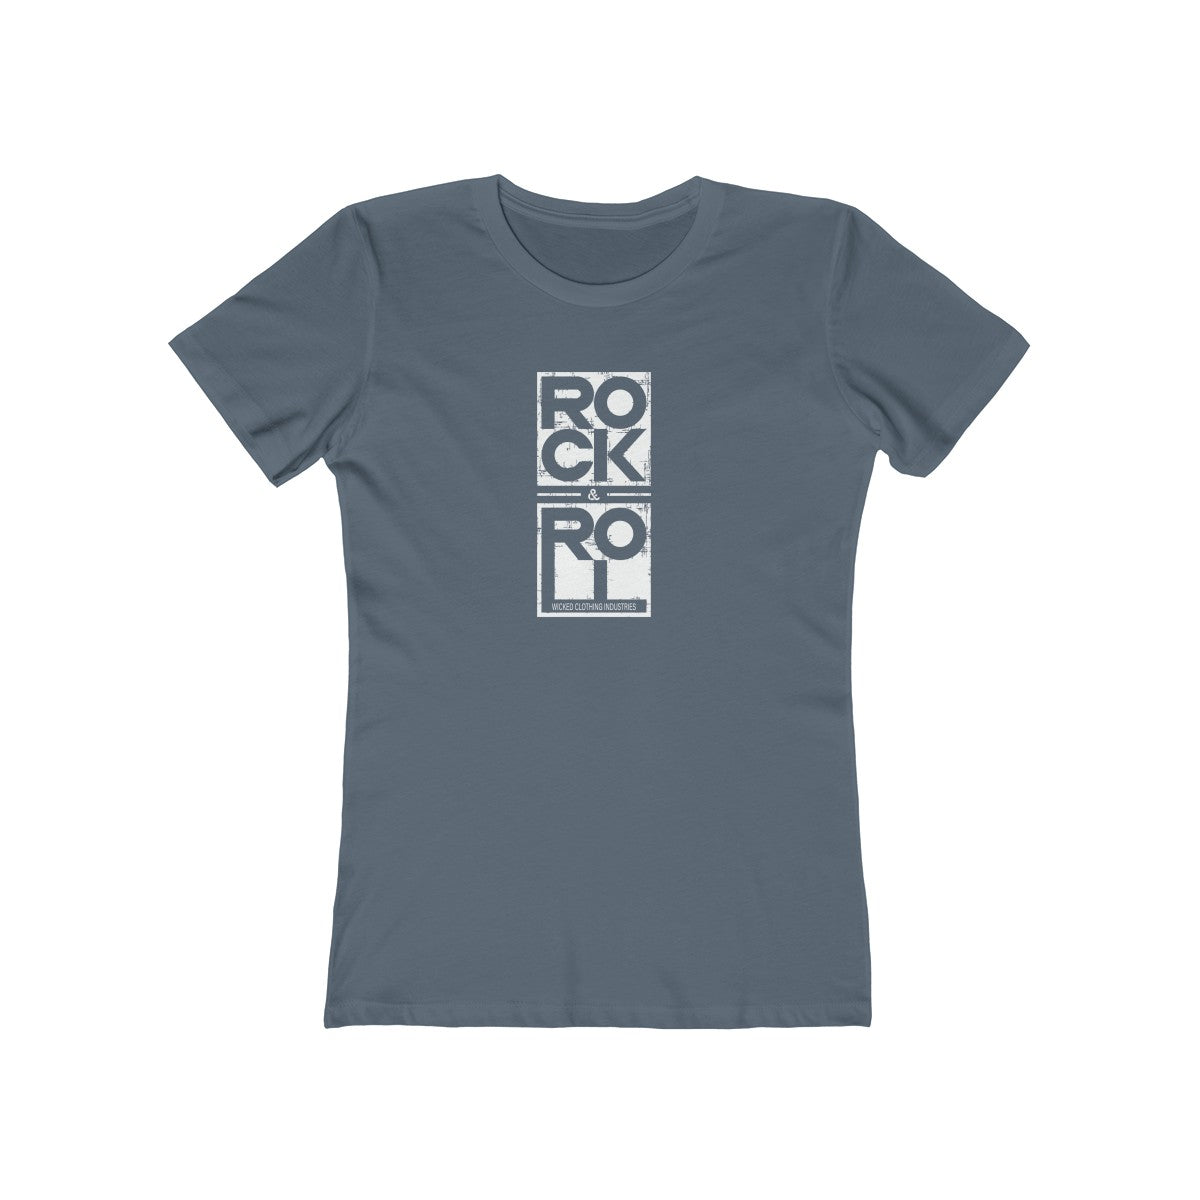 Rock & Roll/ White Square/Women's  Tee